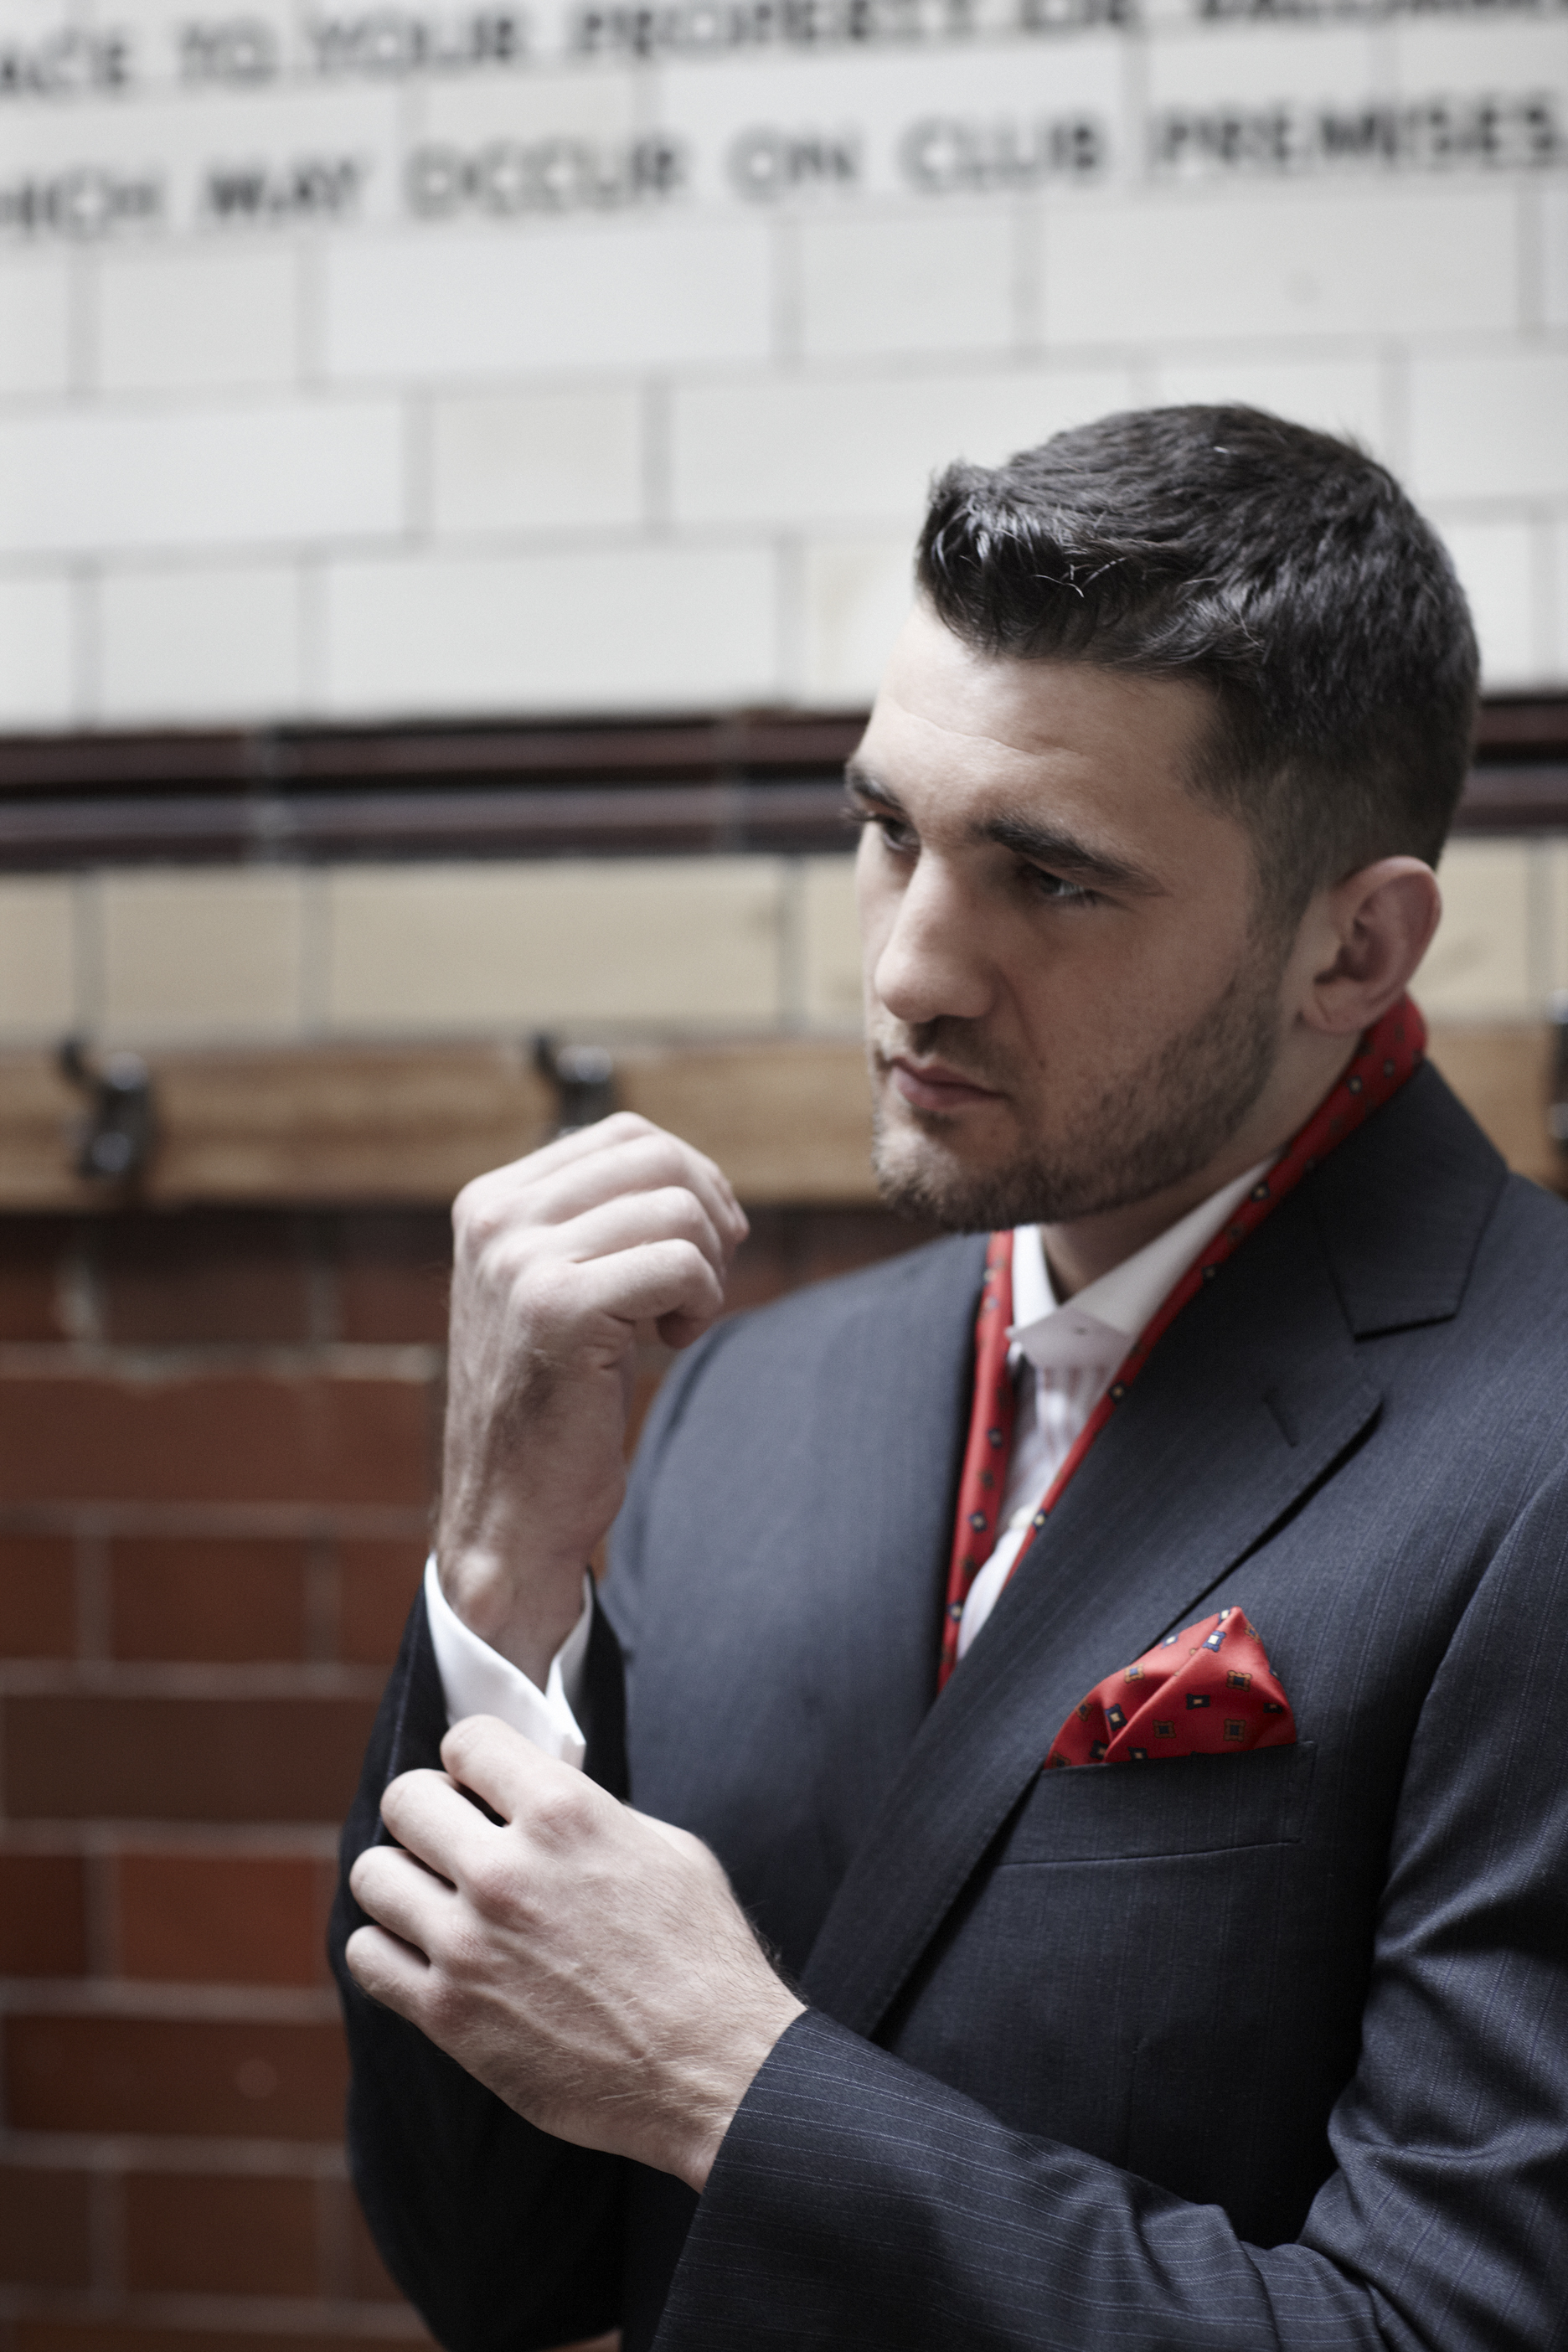 NATHEN CLEVERLY, BOXER